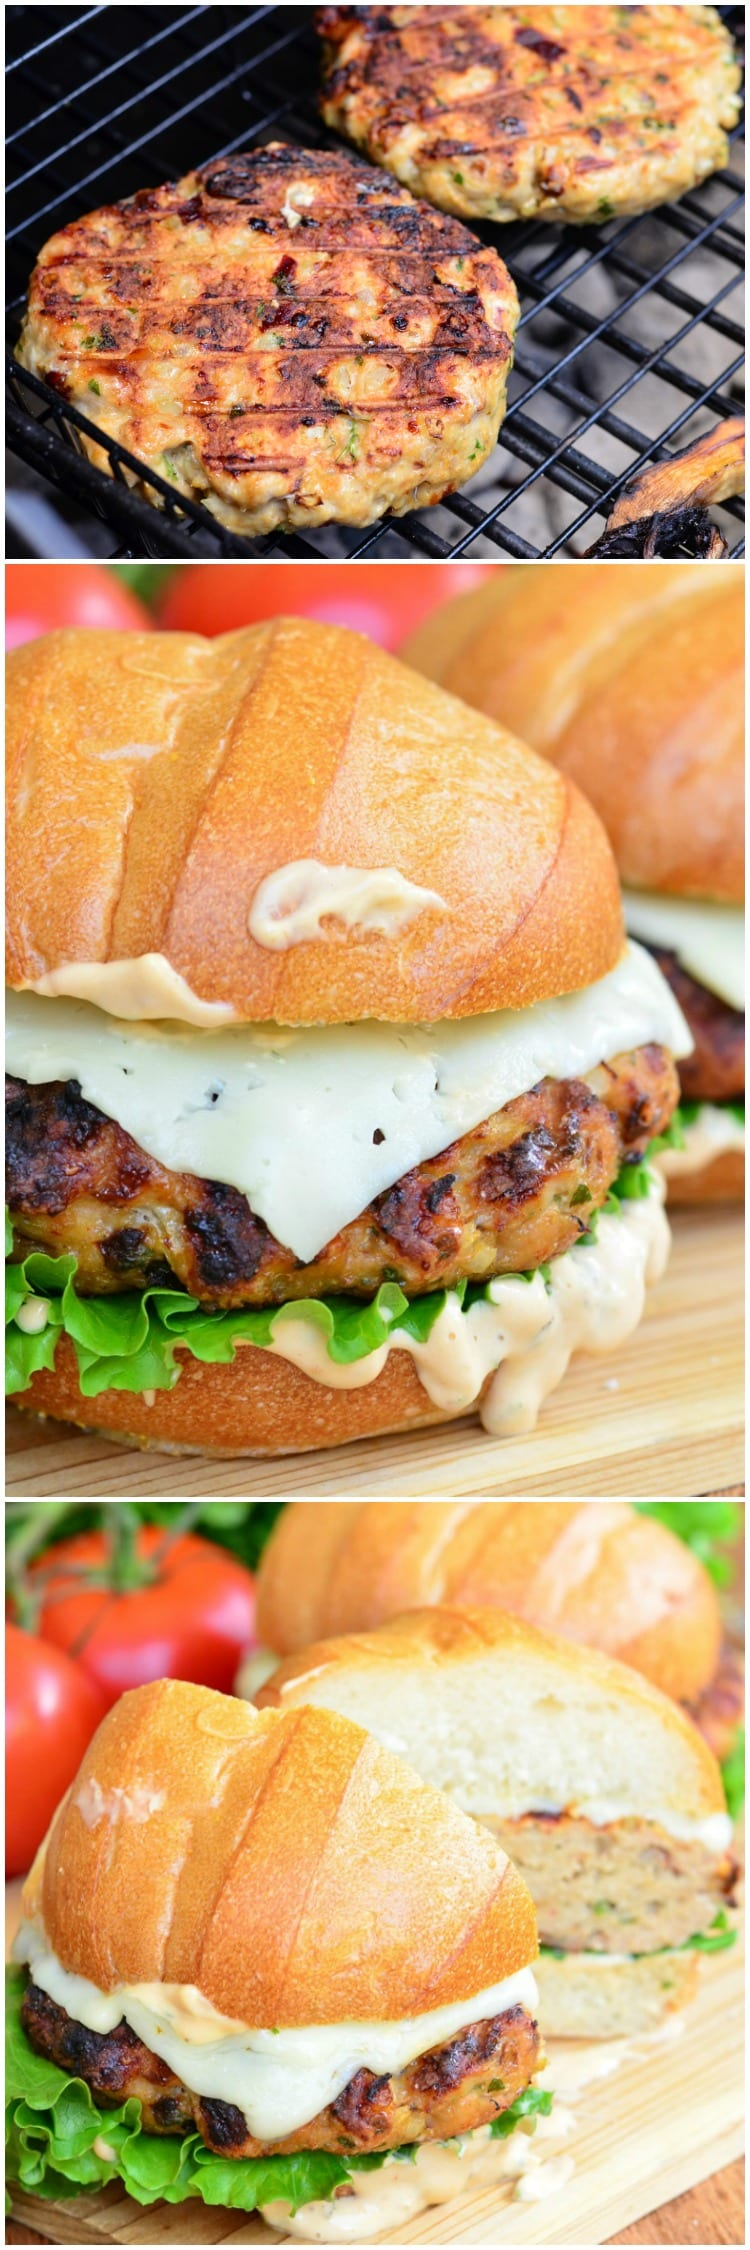 Chicken burger with spicy chipotle. Wonderful, tasty and juicy burger perfect for a weekend barbecue or a midweek dinner. # hamburger # chicken